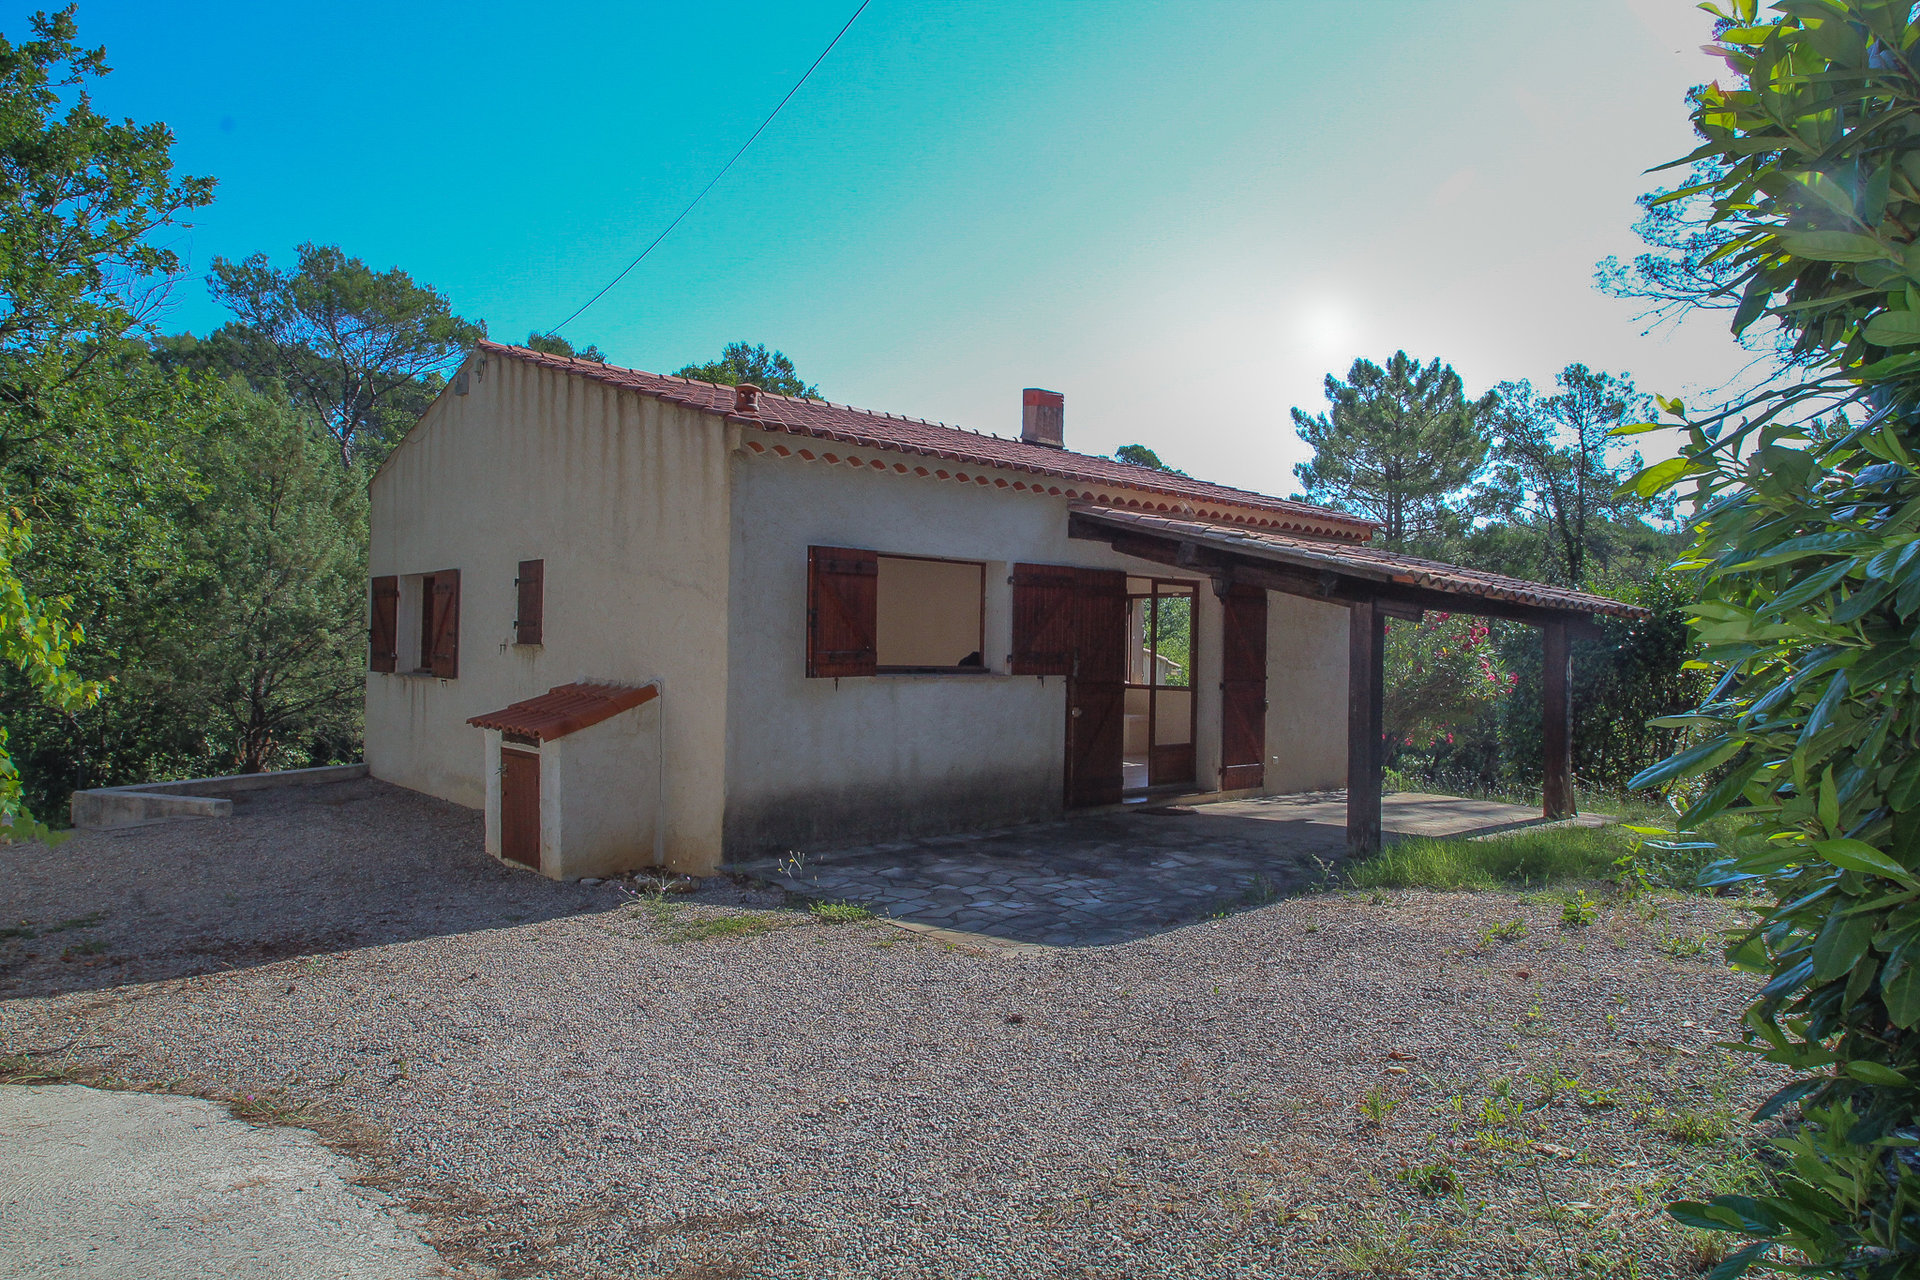 Villa in rural area on 3400m² Land with pool